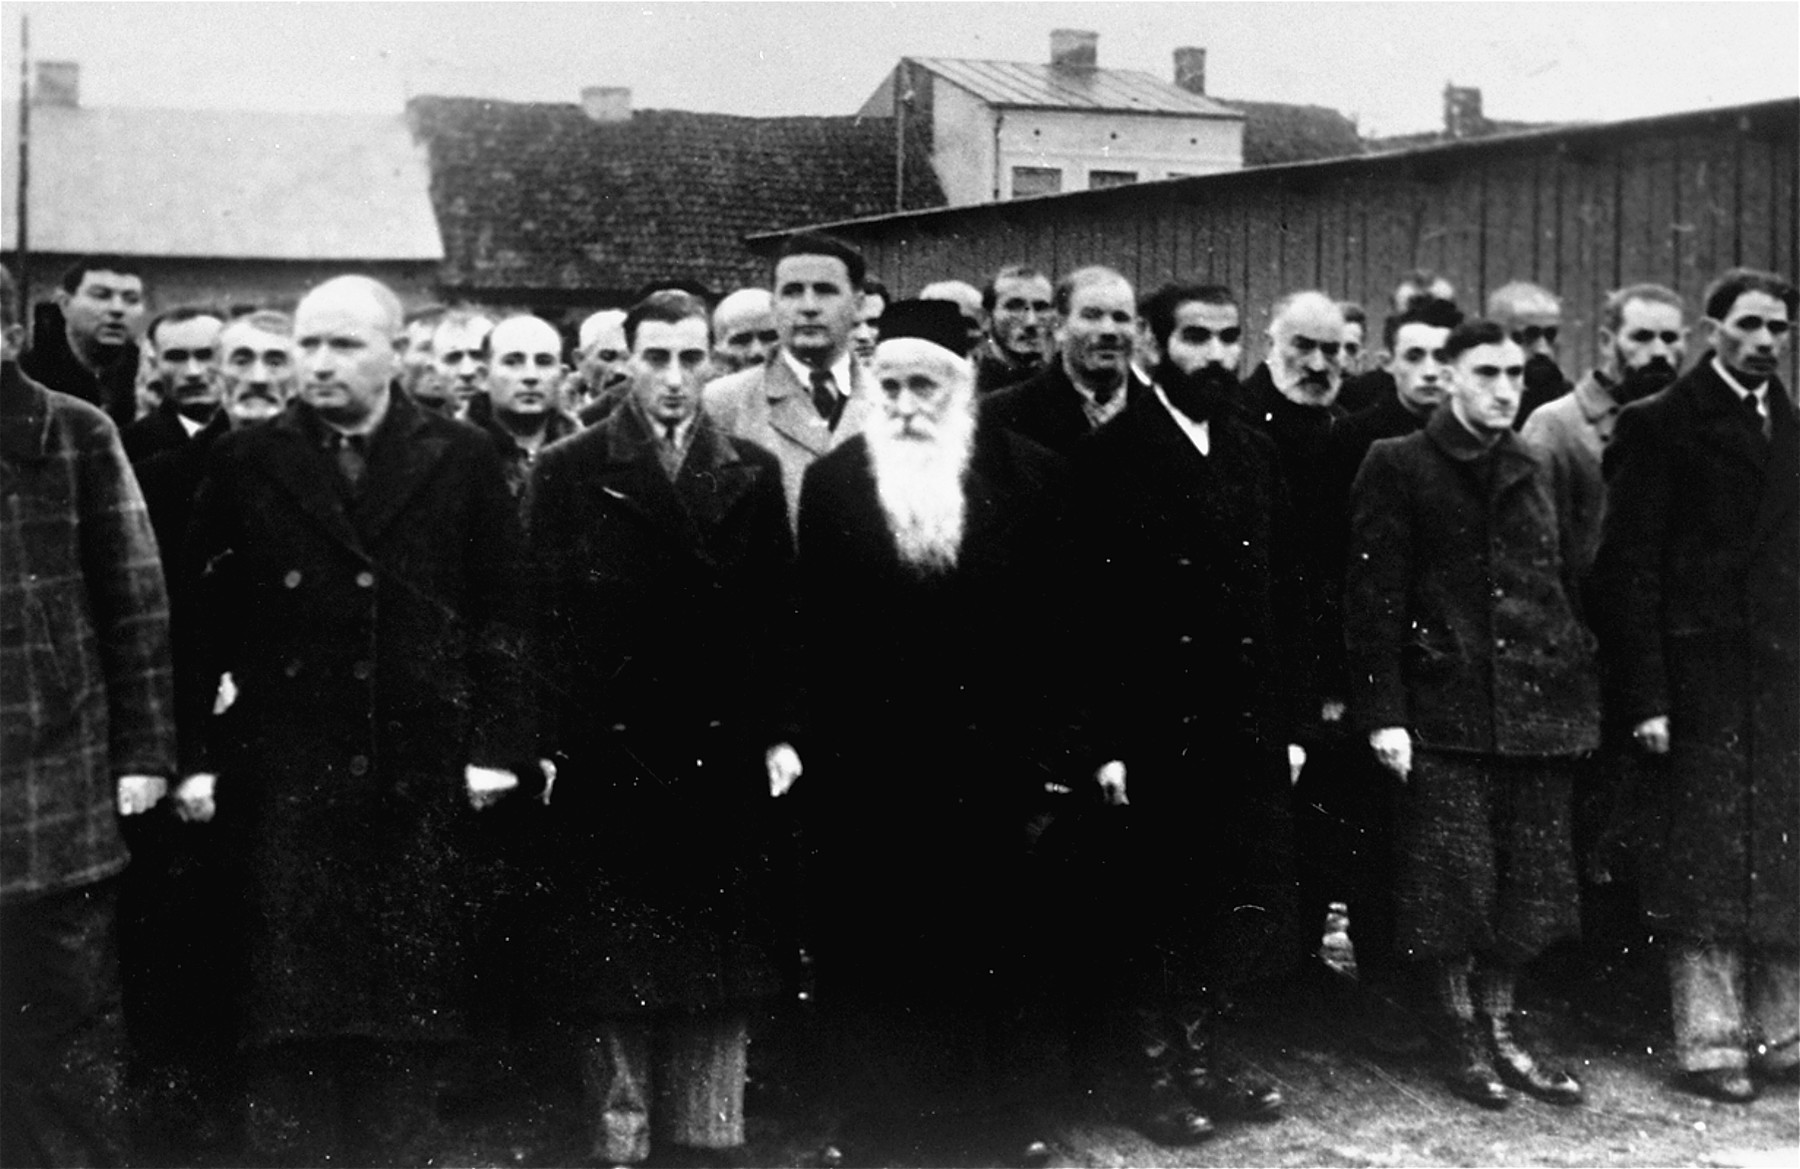 Jewish men are lined up in a courtyard or public square in Raciaz.  Among them is an elderly rabbi.